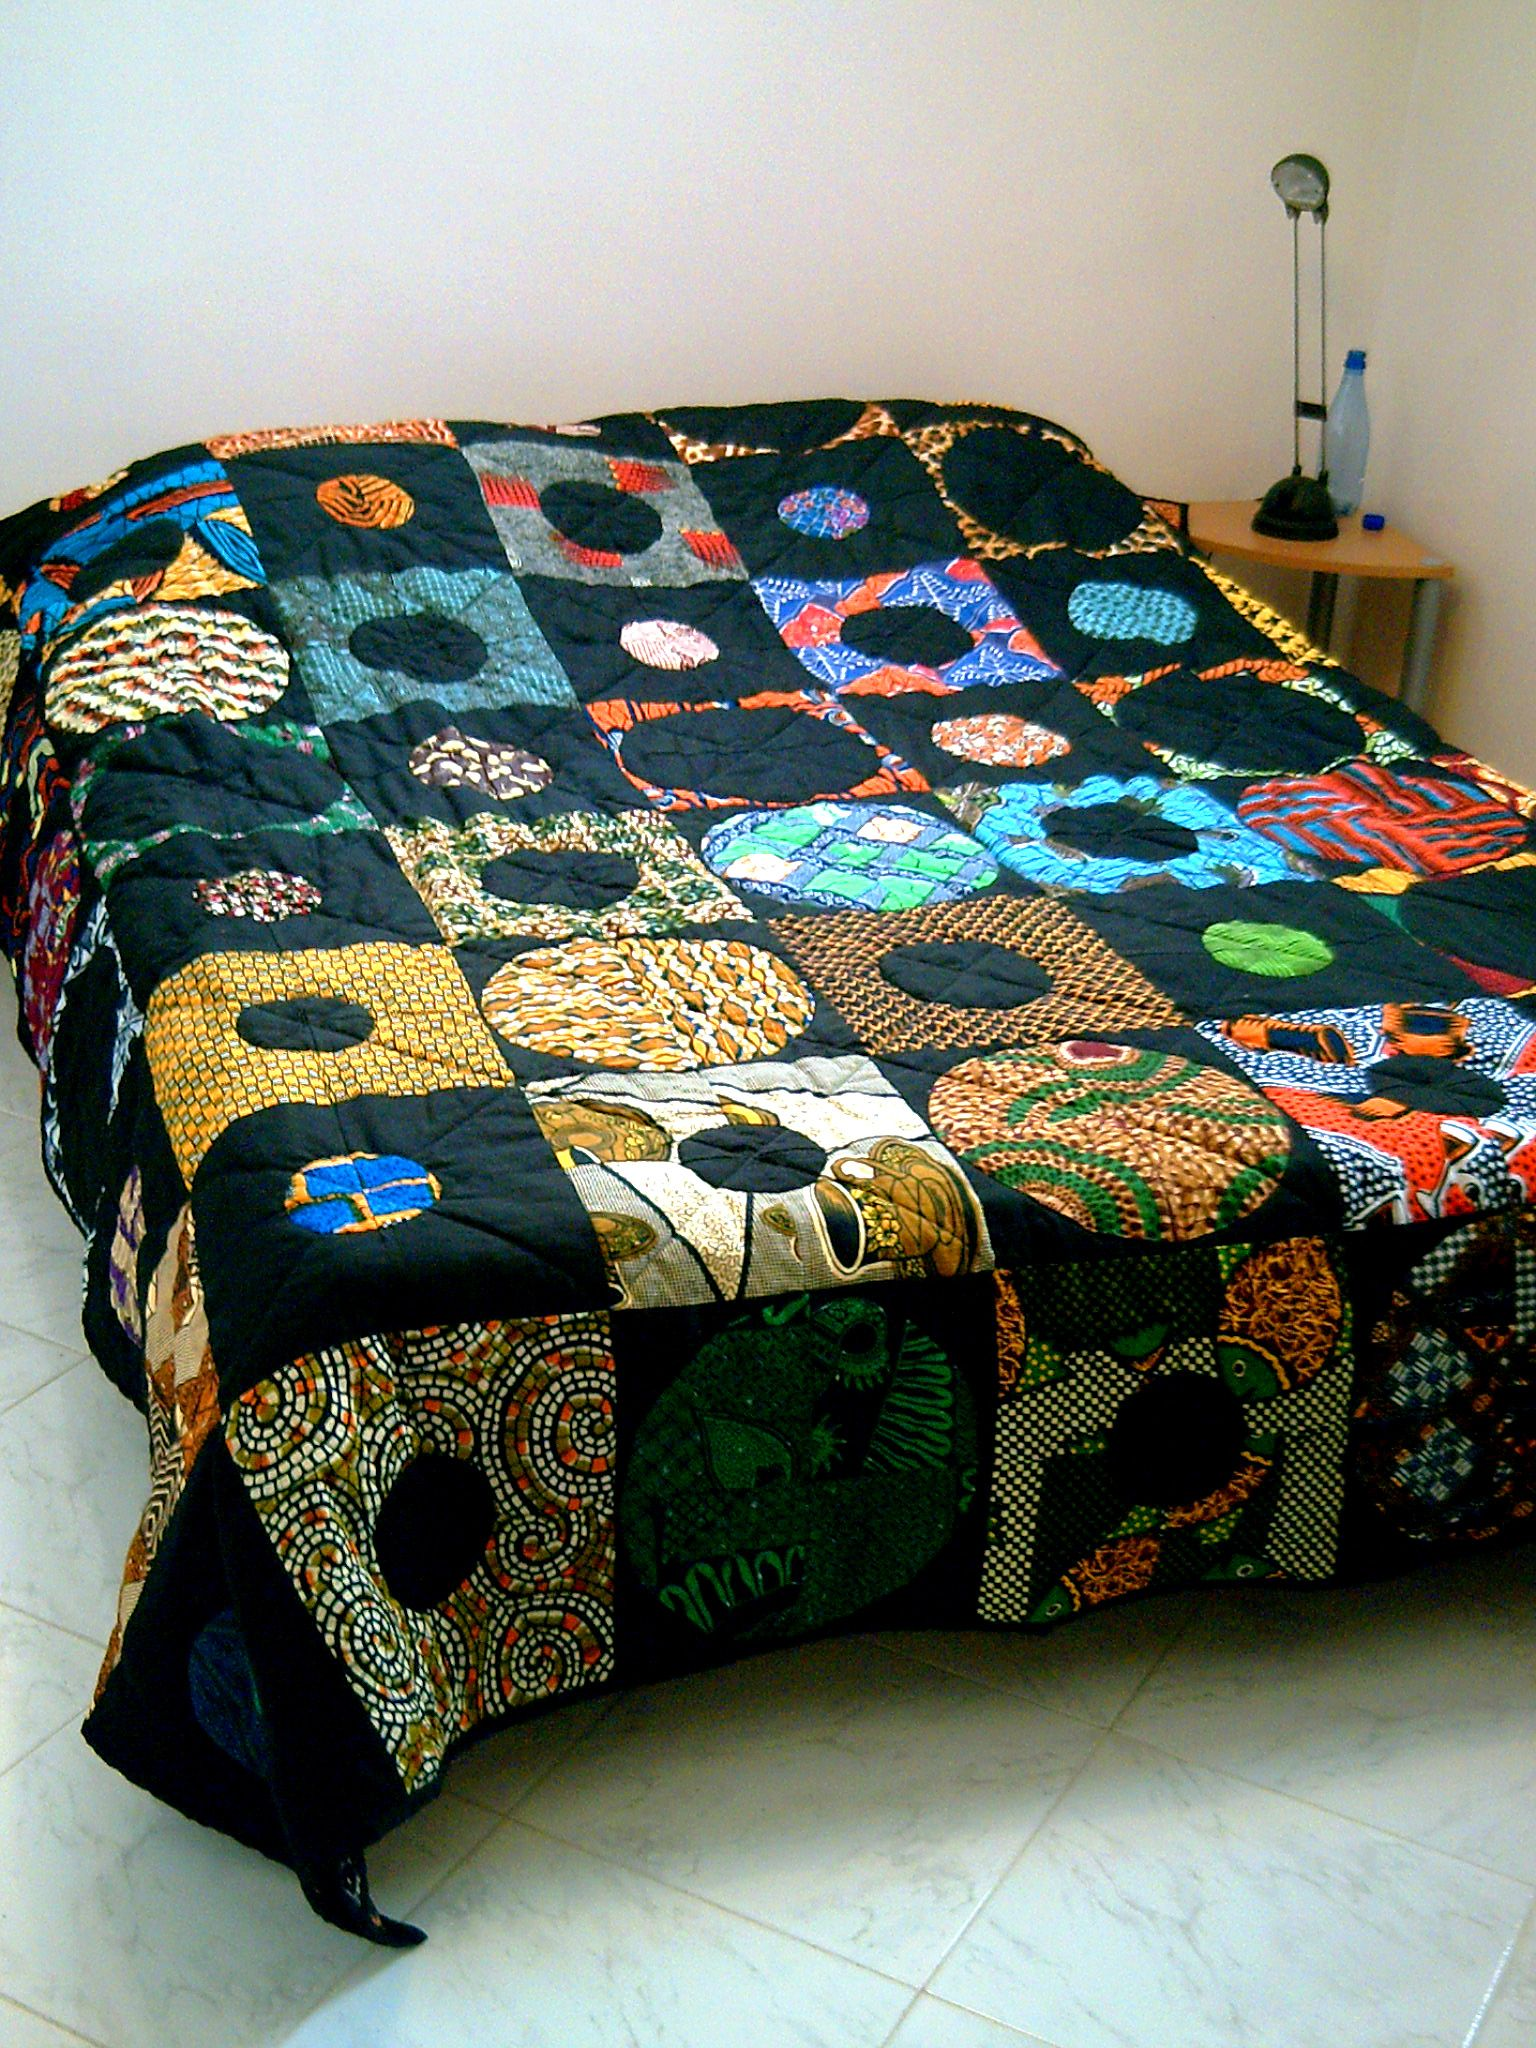 couvre lit mes oeuvres textiles pinterest africans wax and african interior. Black Bedroom Furniture Sets. Home Design Ideas